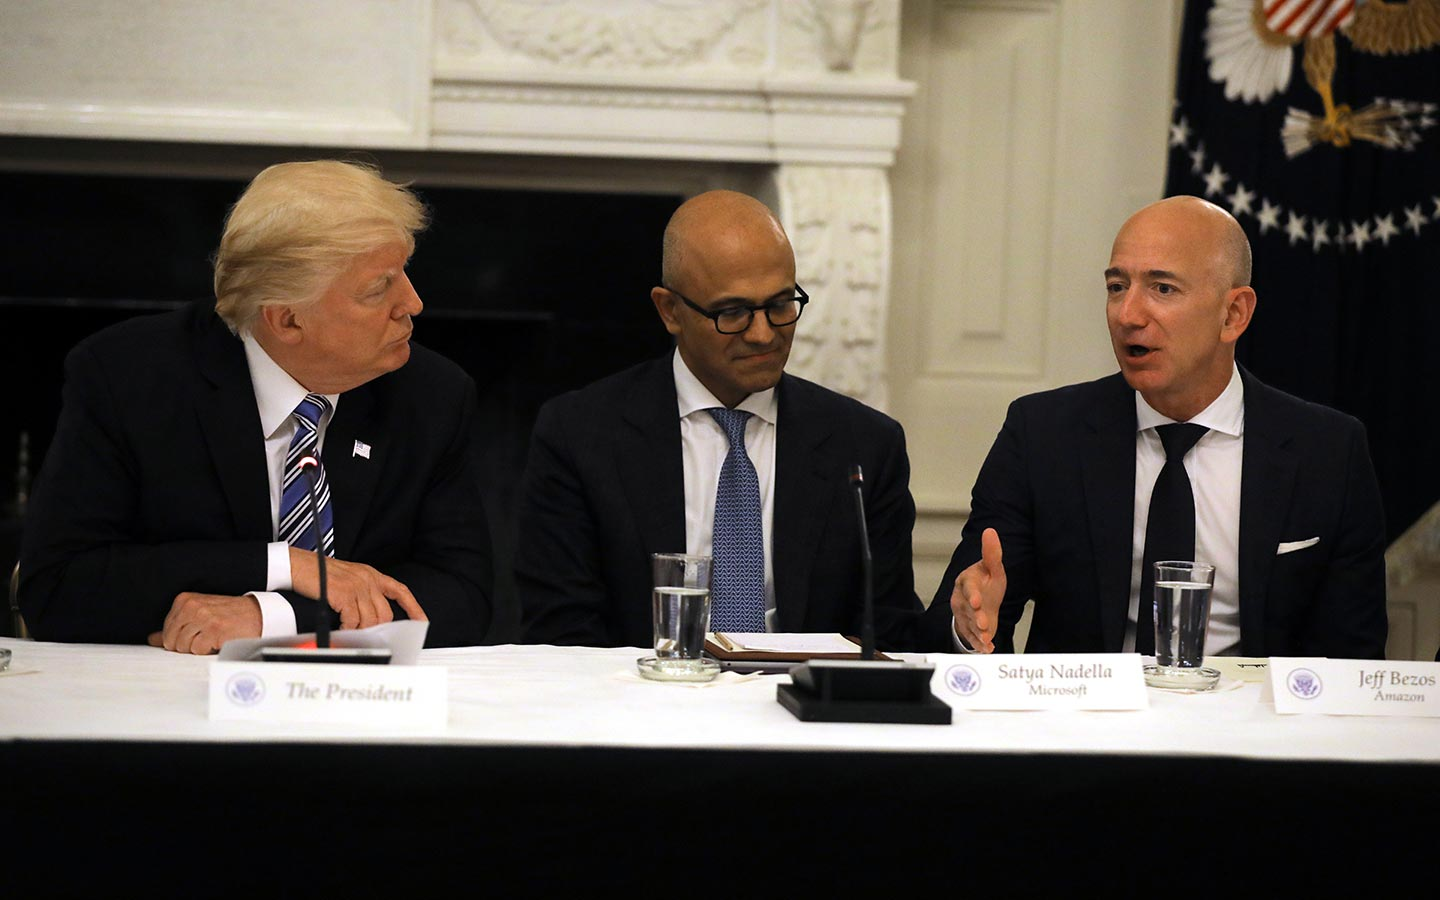 Trump Bezos Amazon